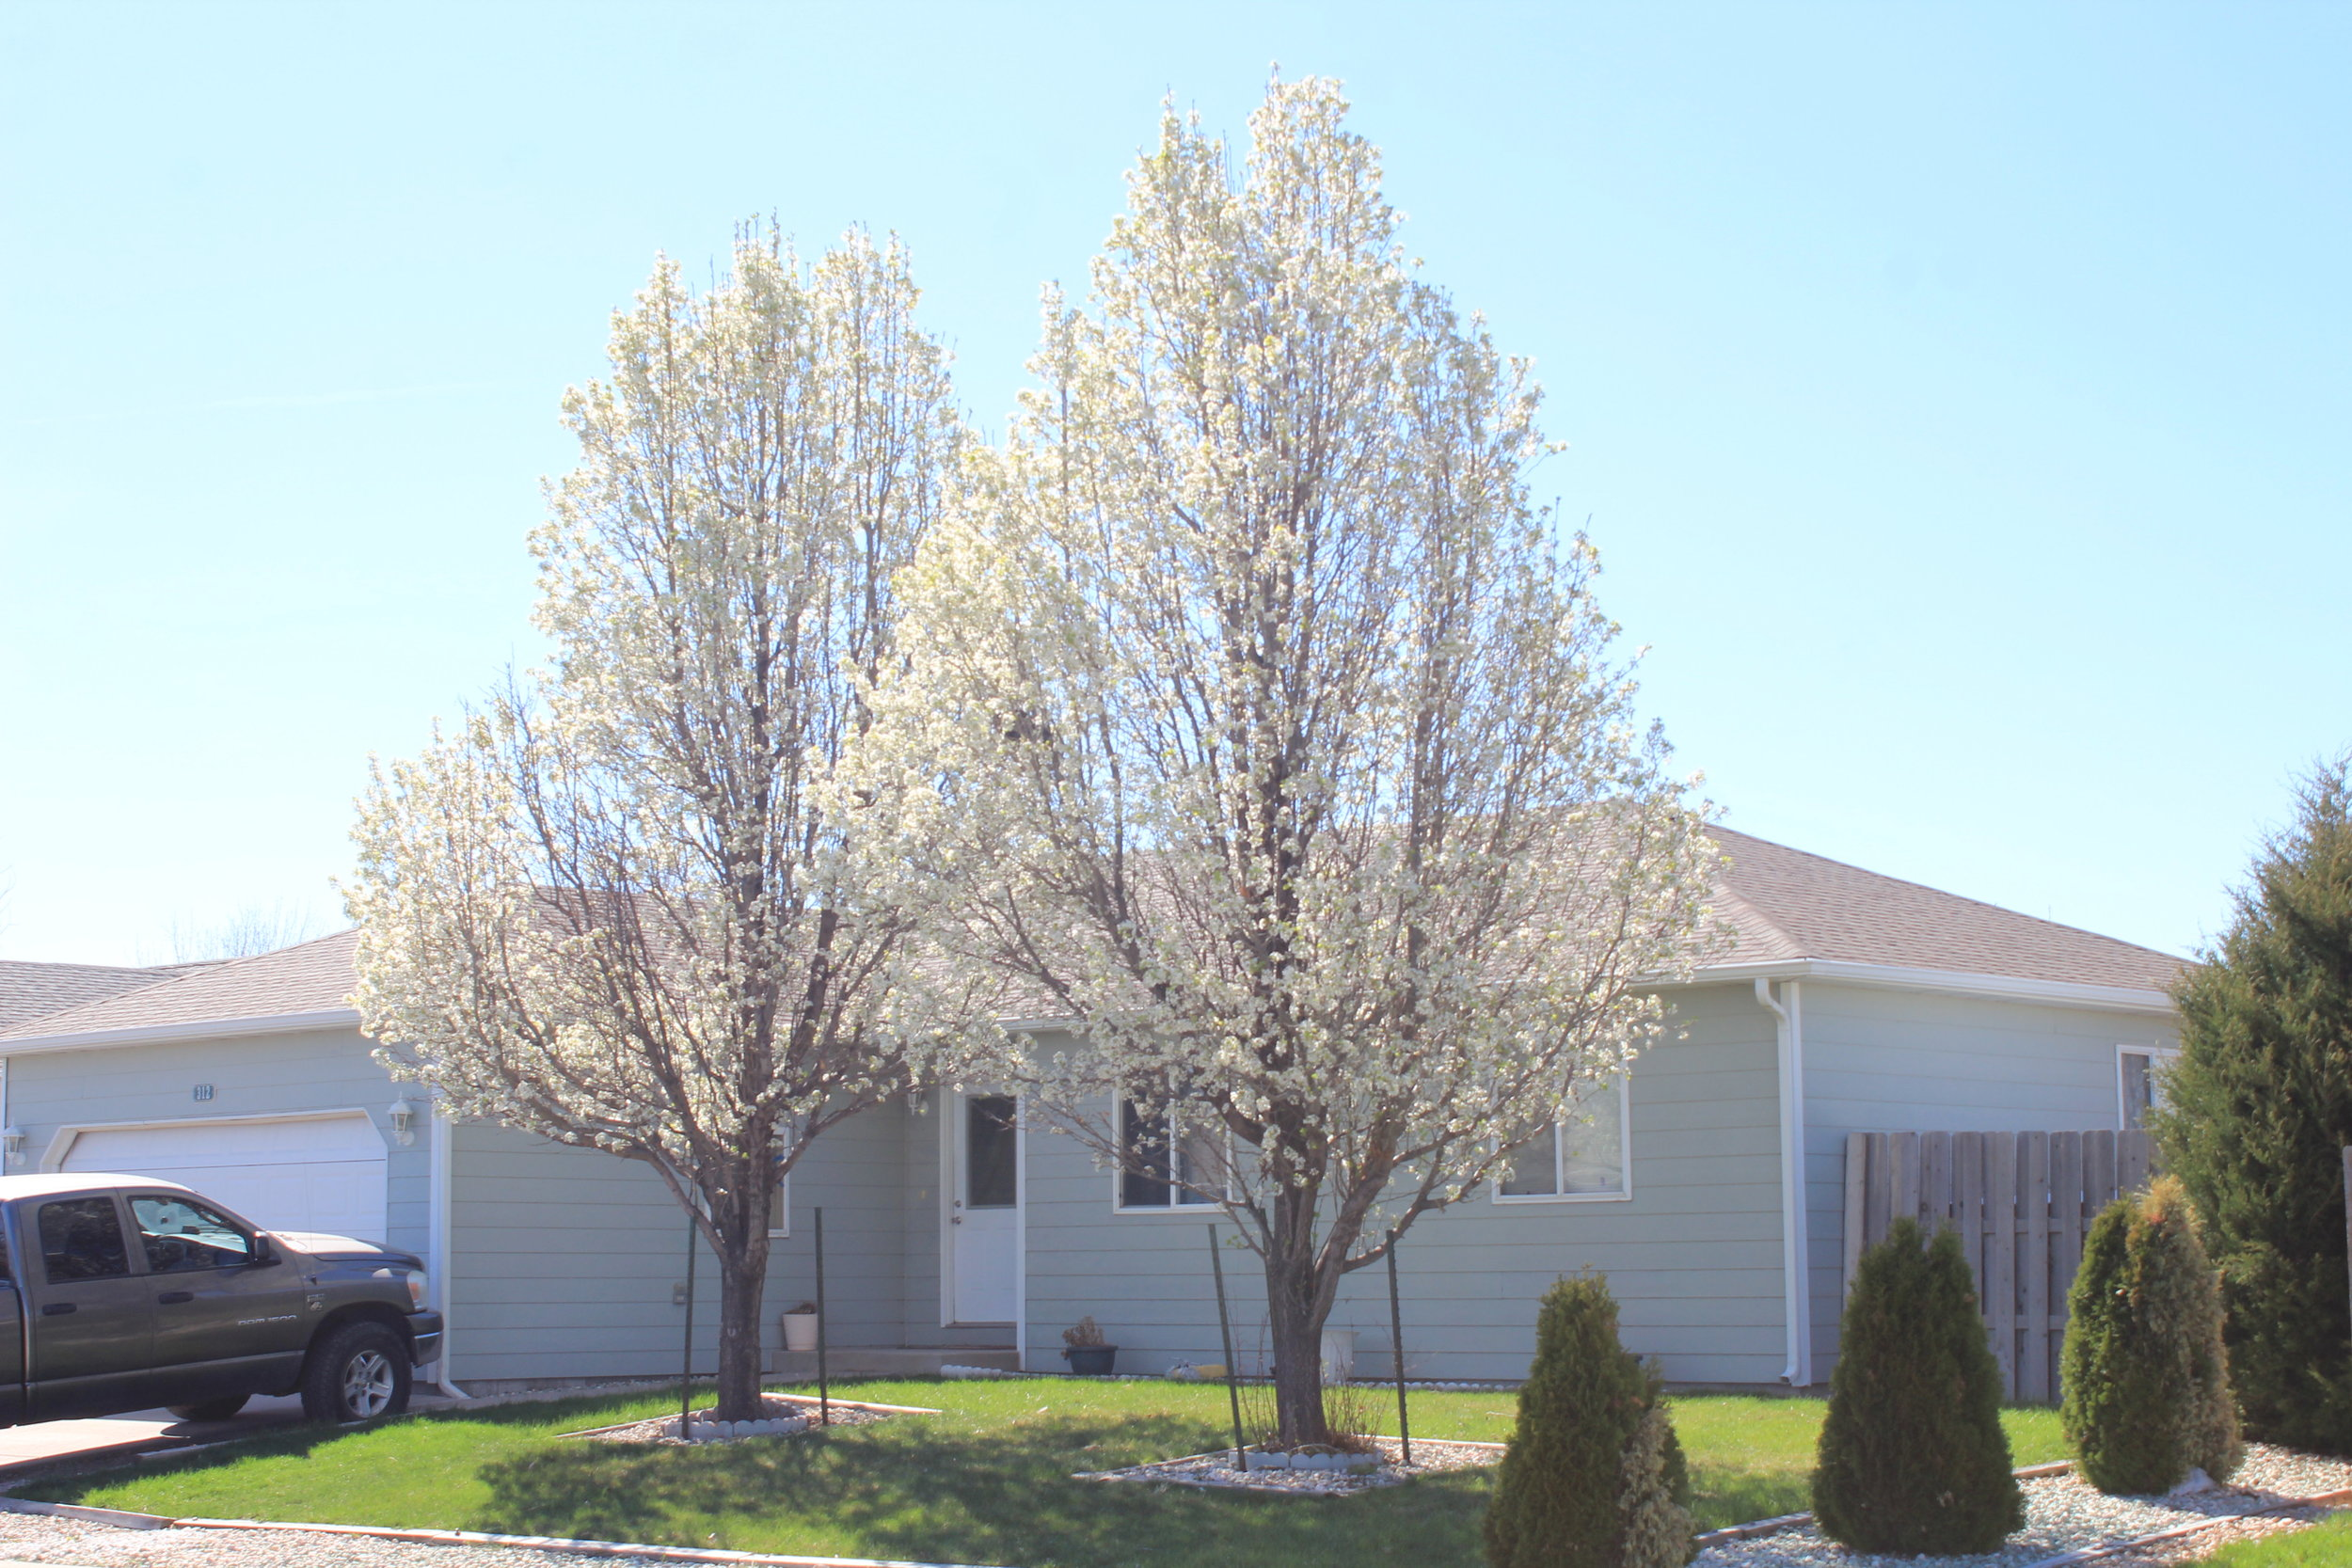 312 Gateway Ave. Fort Morgan - 3 Bed, 2 Bath 1864 Sq. Ft.Listed for : $239,900 Sold for:$230,000Represented: Seller